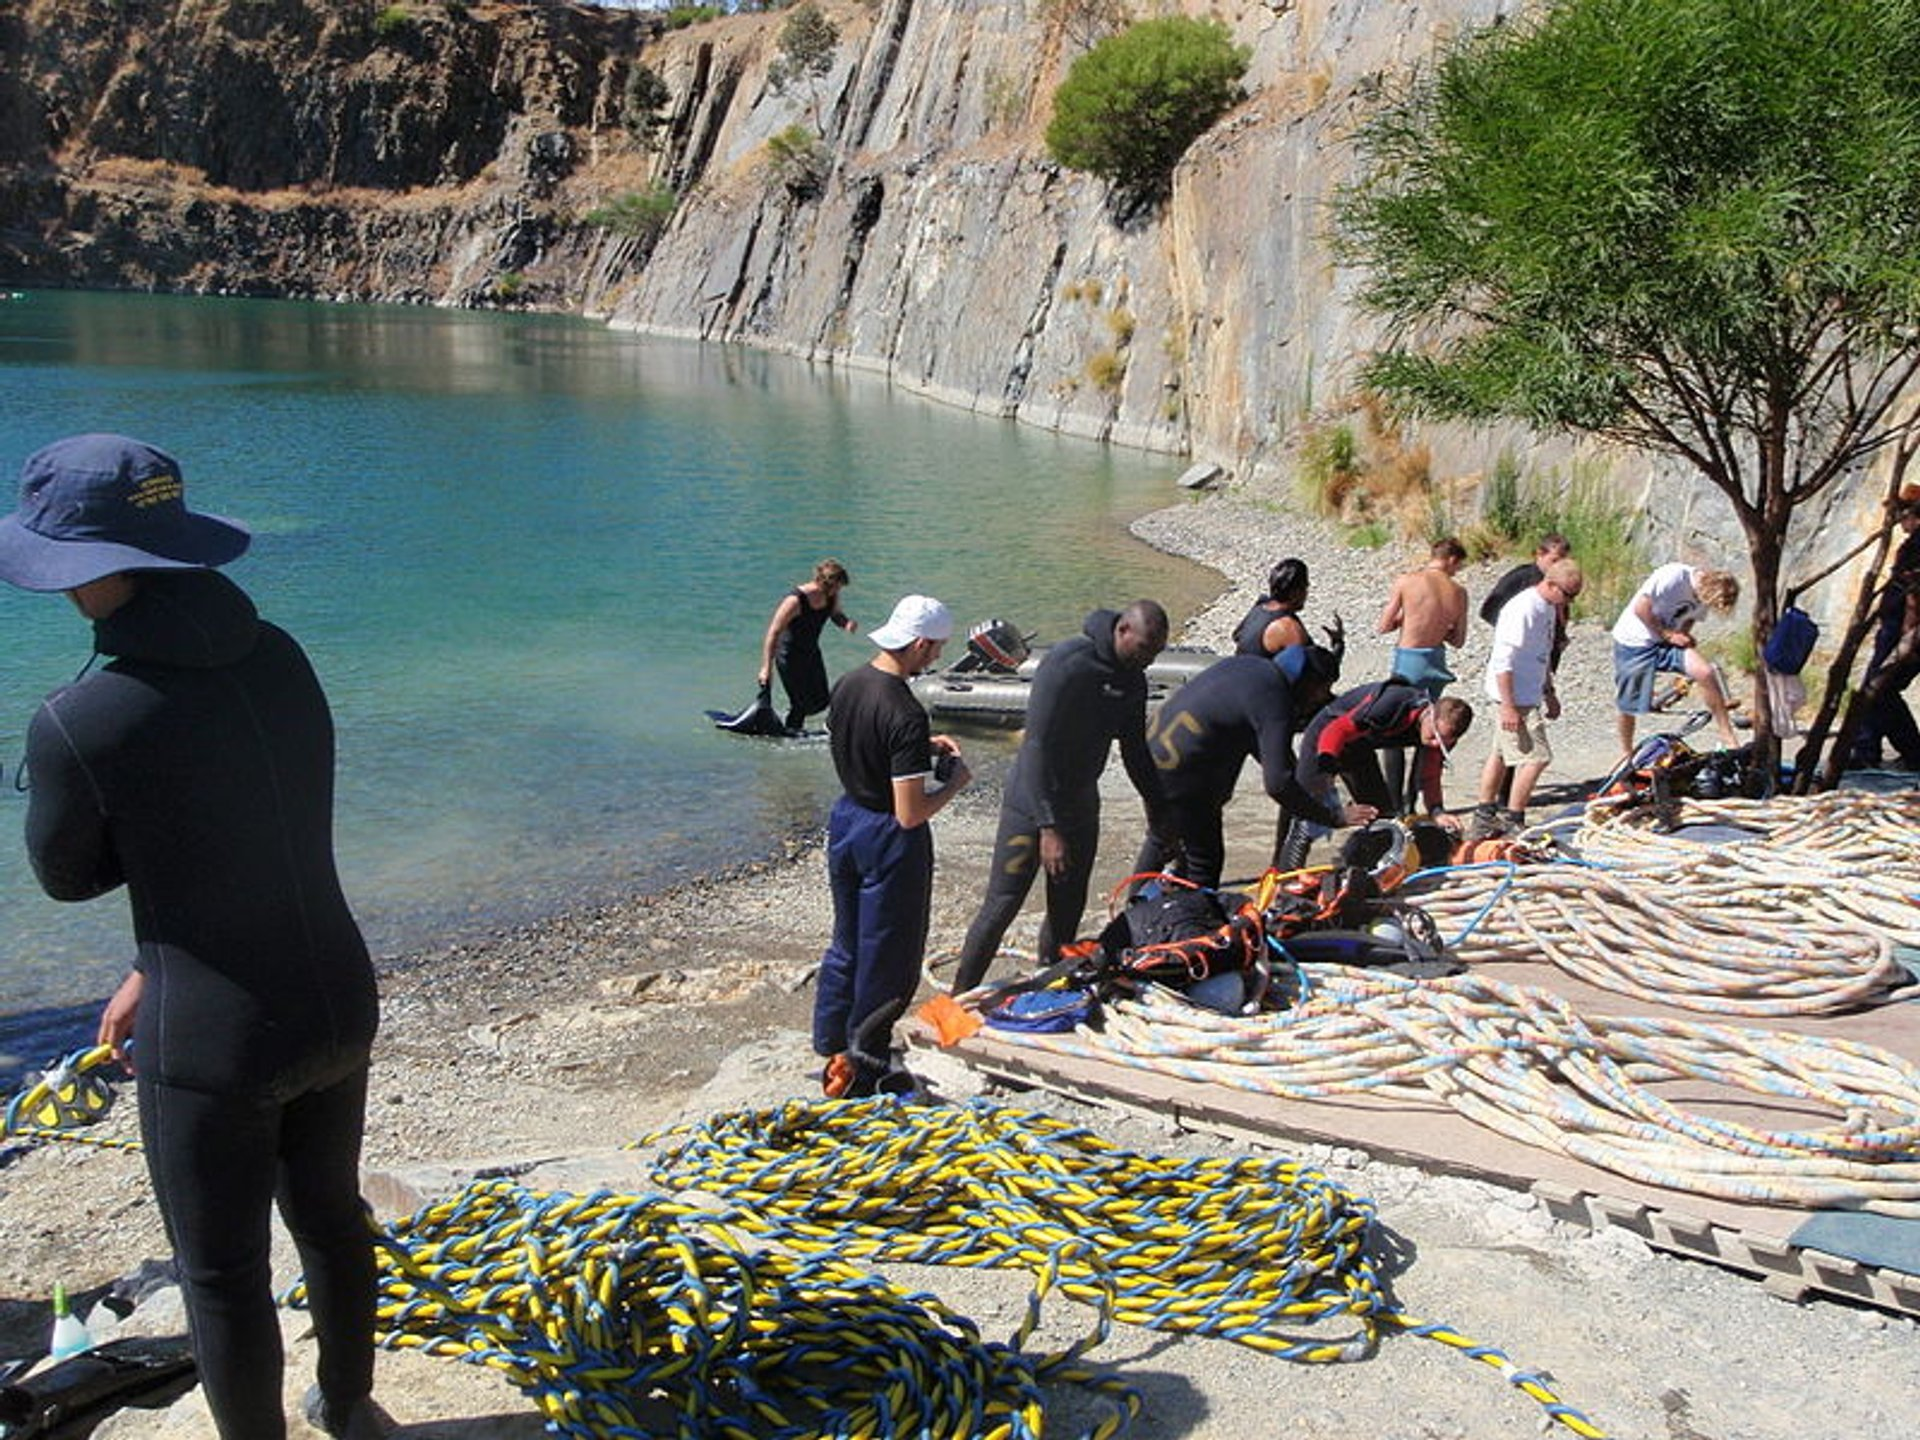 Commercial diver training at Blue Rock Quarry, Gordon's Bay 2019